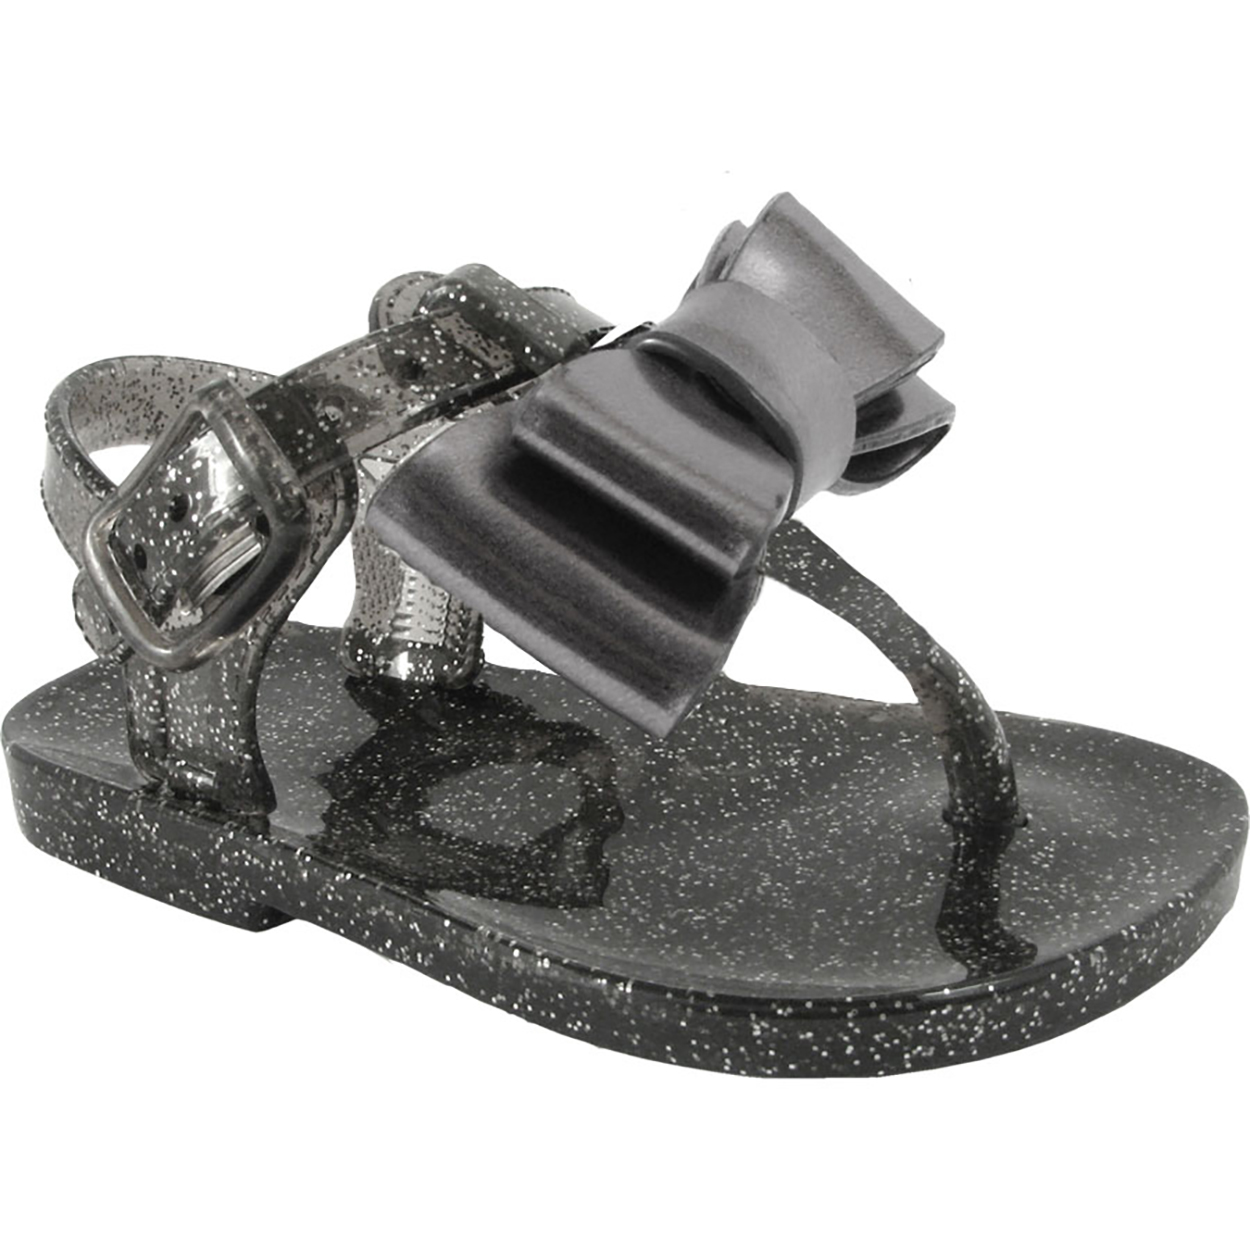 Wee Kids Baby-Girls Sandals Jelly Shoes With Bow (Infant Crib Shoes Baby Shoes) Girls Summer Sandals Charcoal Grey Sz 3